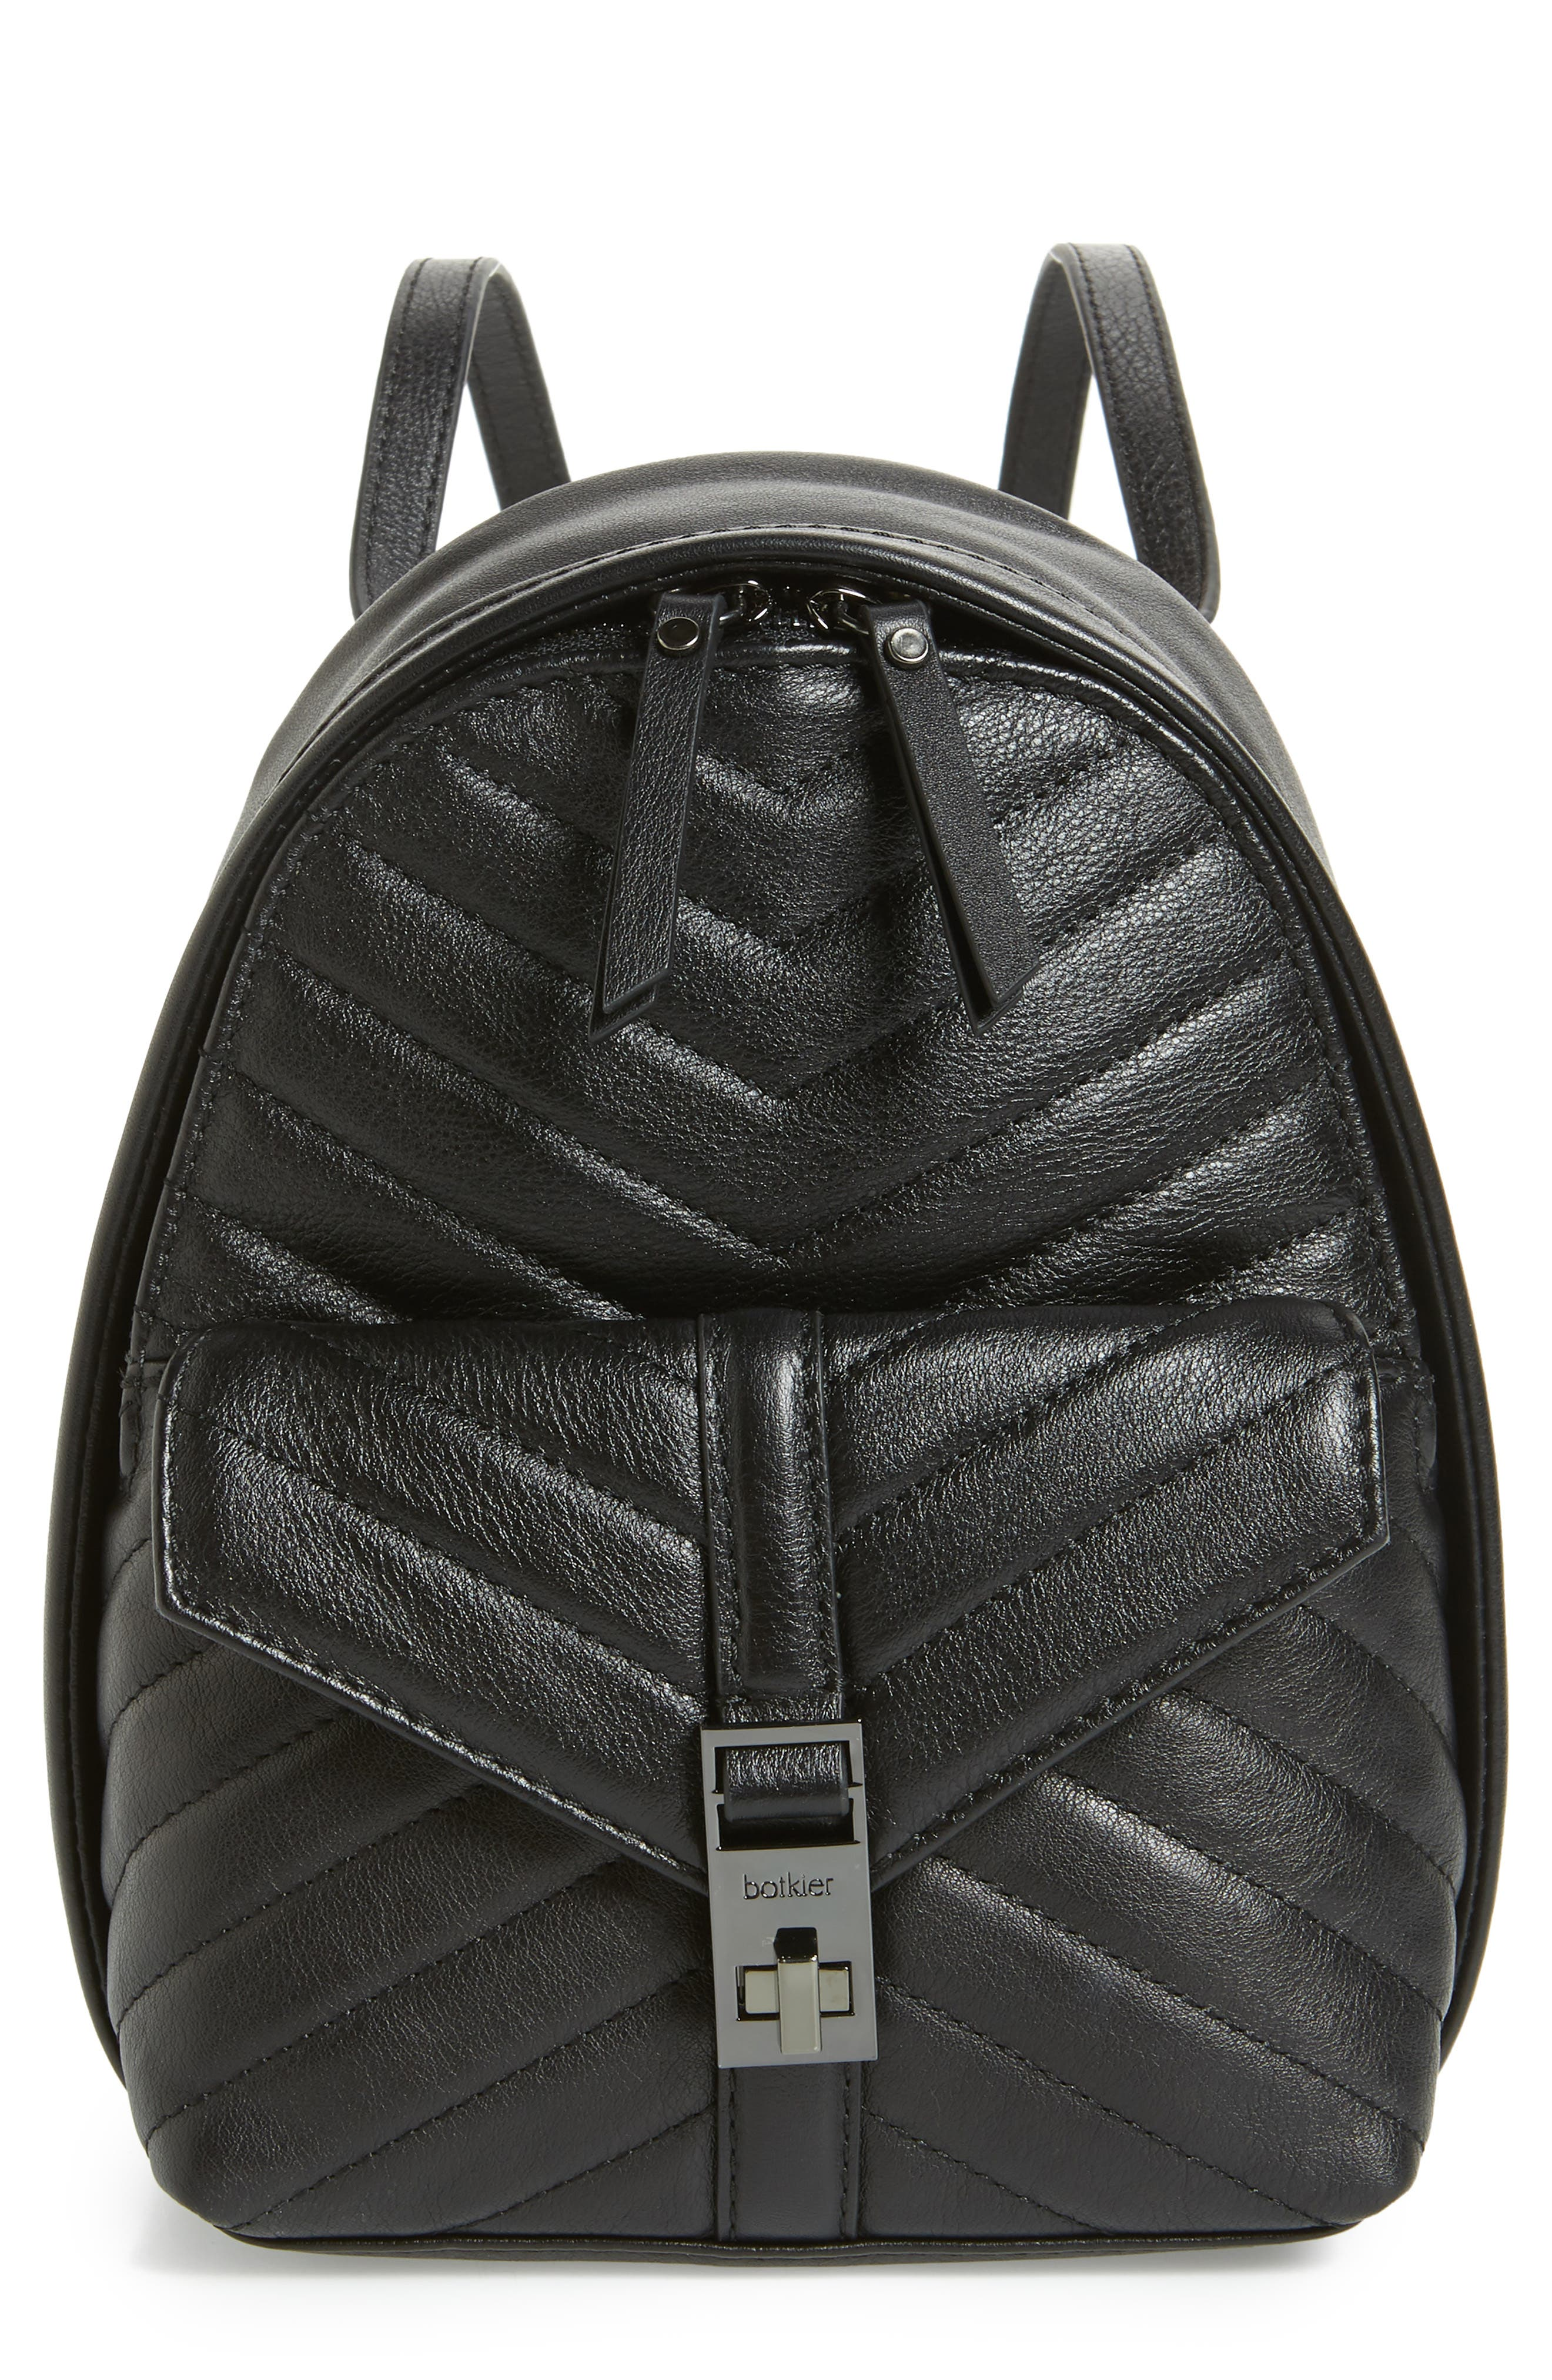 Dakota Quilted Leather Backpack,                             Main thumbnail 1, color,                             001